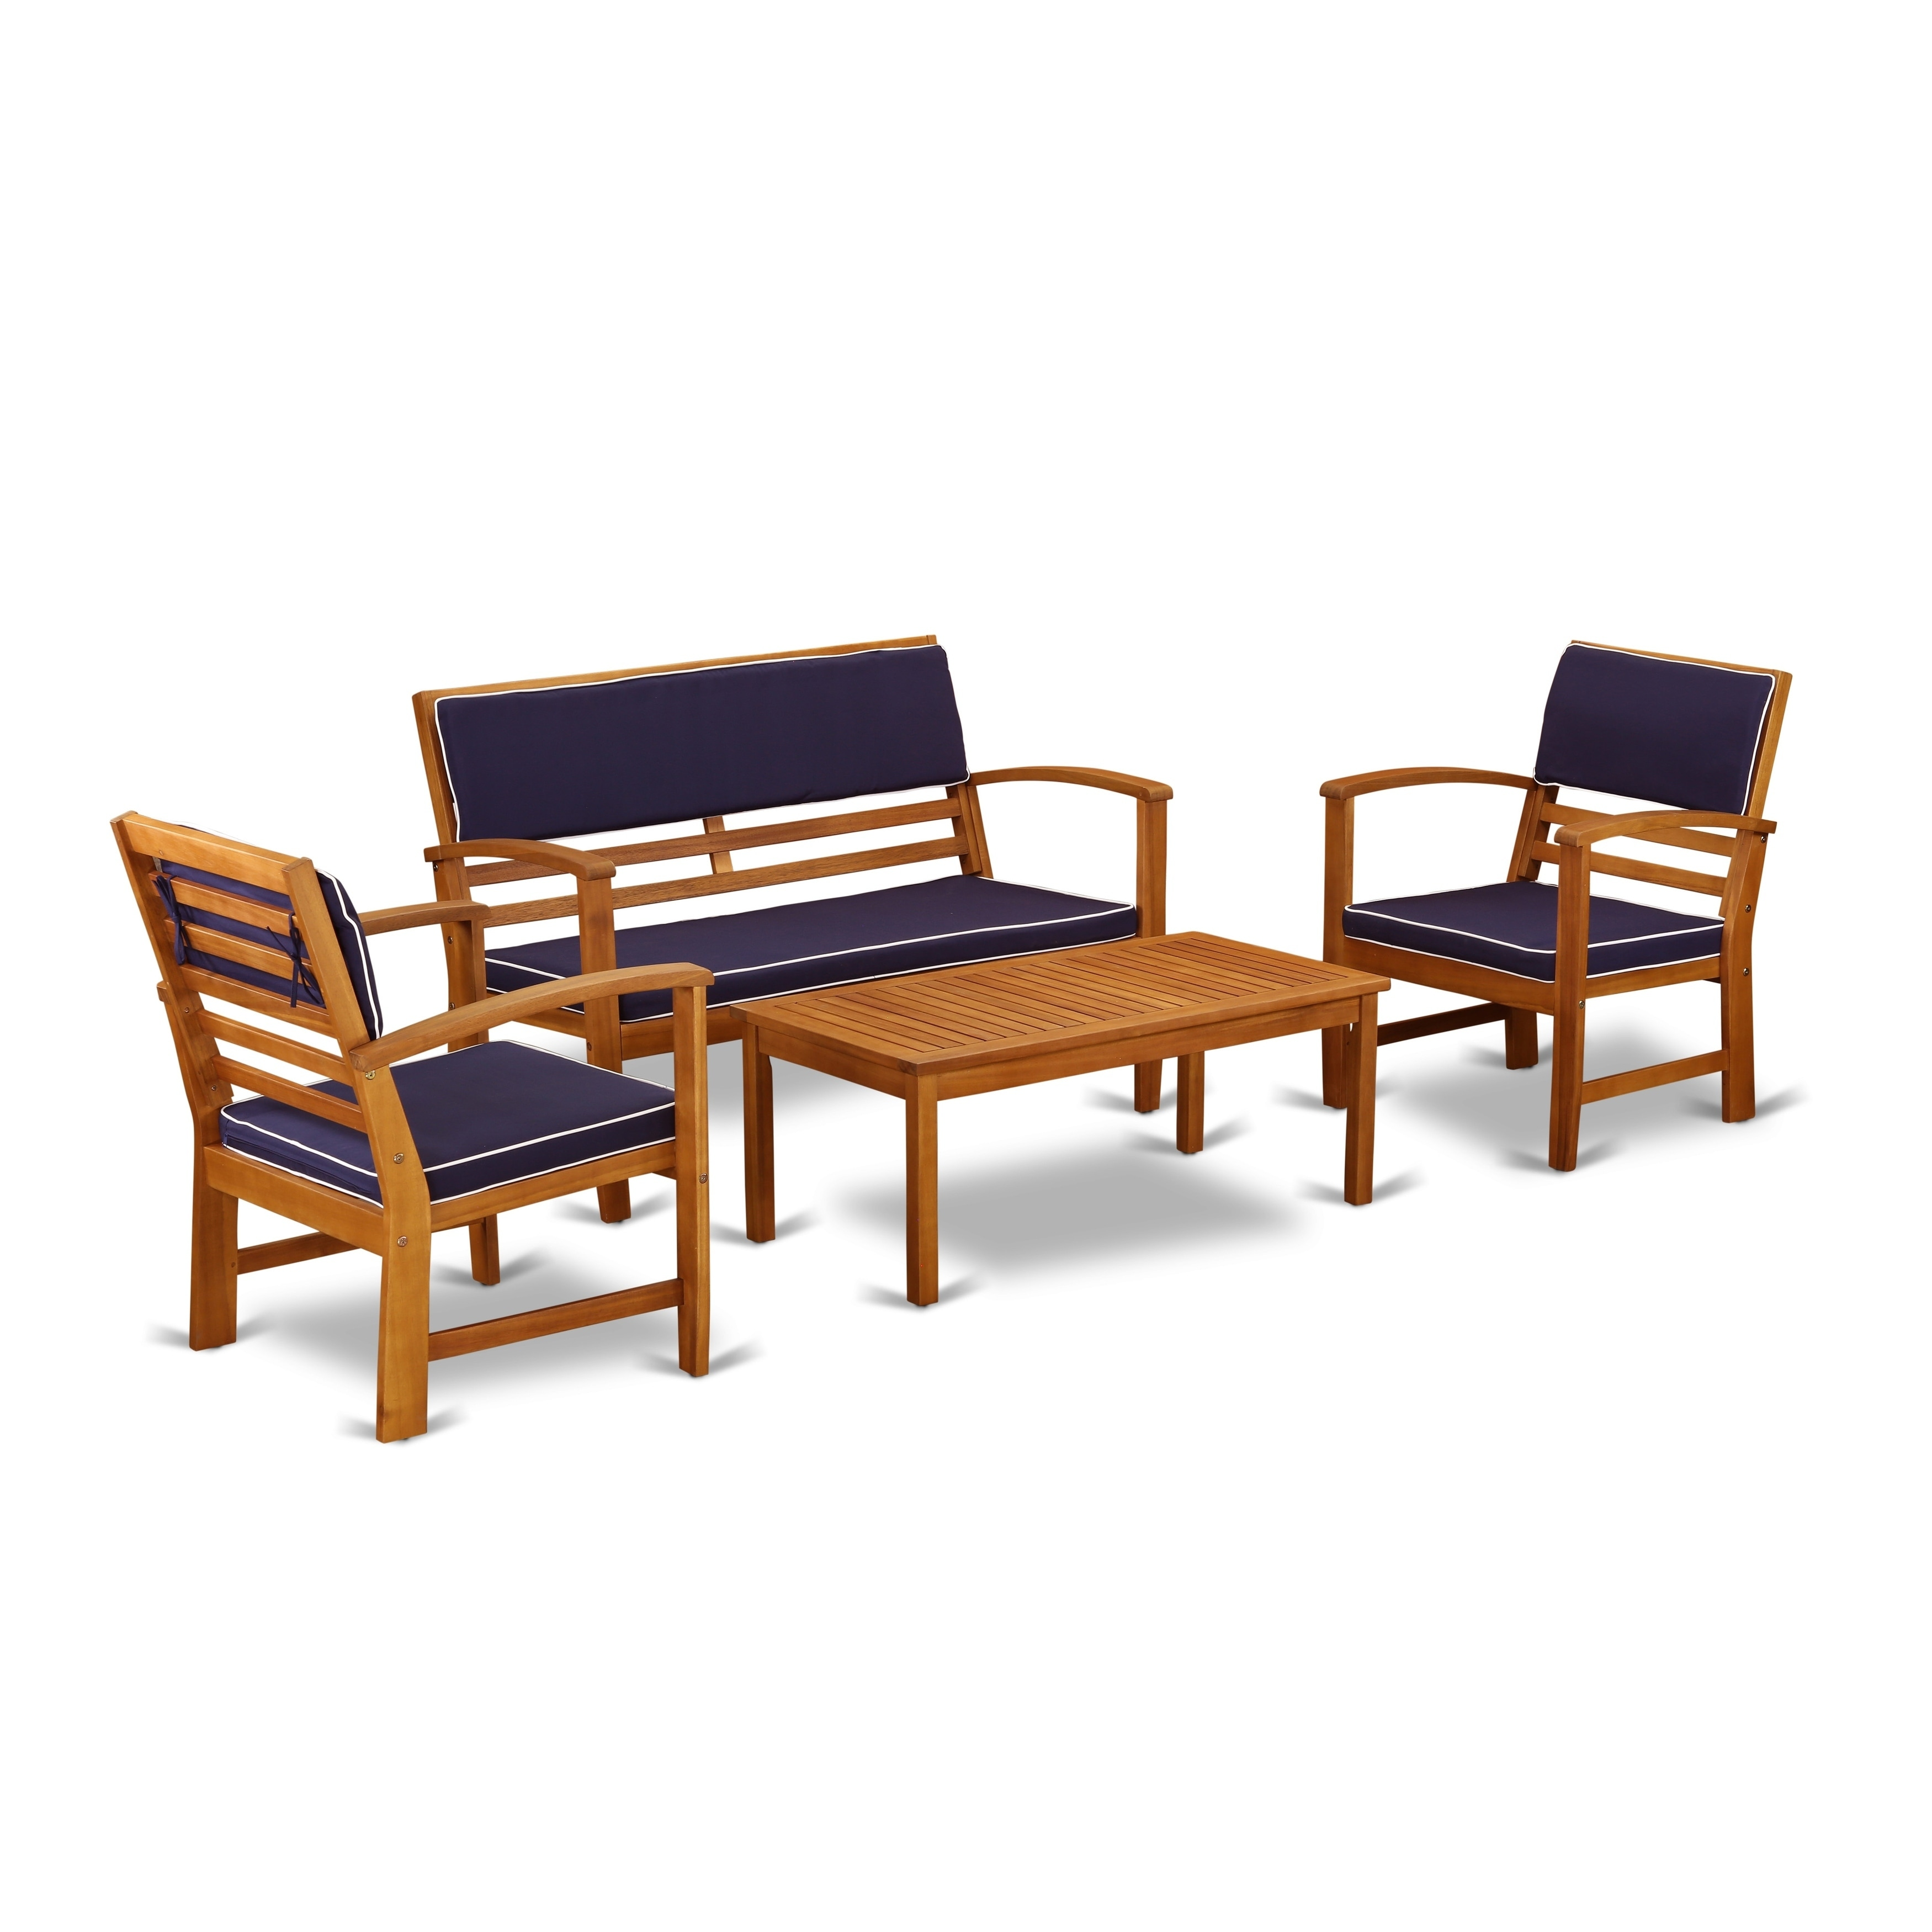 Groovy Bcossna 4Pc Set Offers A Bench And 2 Arm Chairs Plus A Small Table Customarchery Wood Chair Design Ideas Customarcherynet